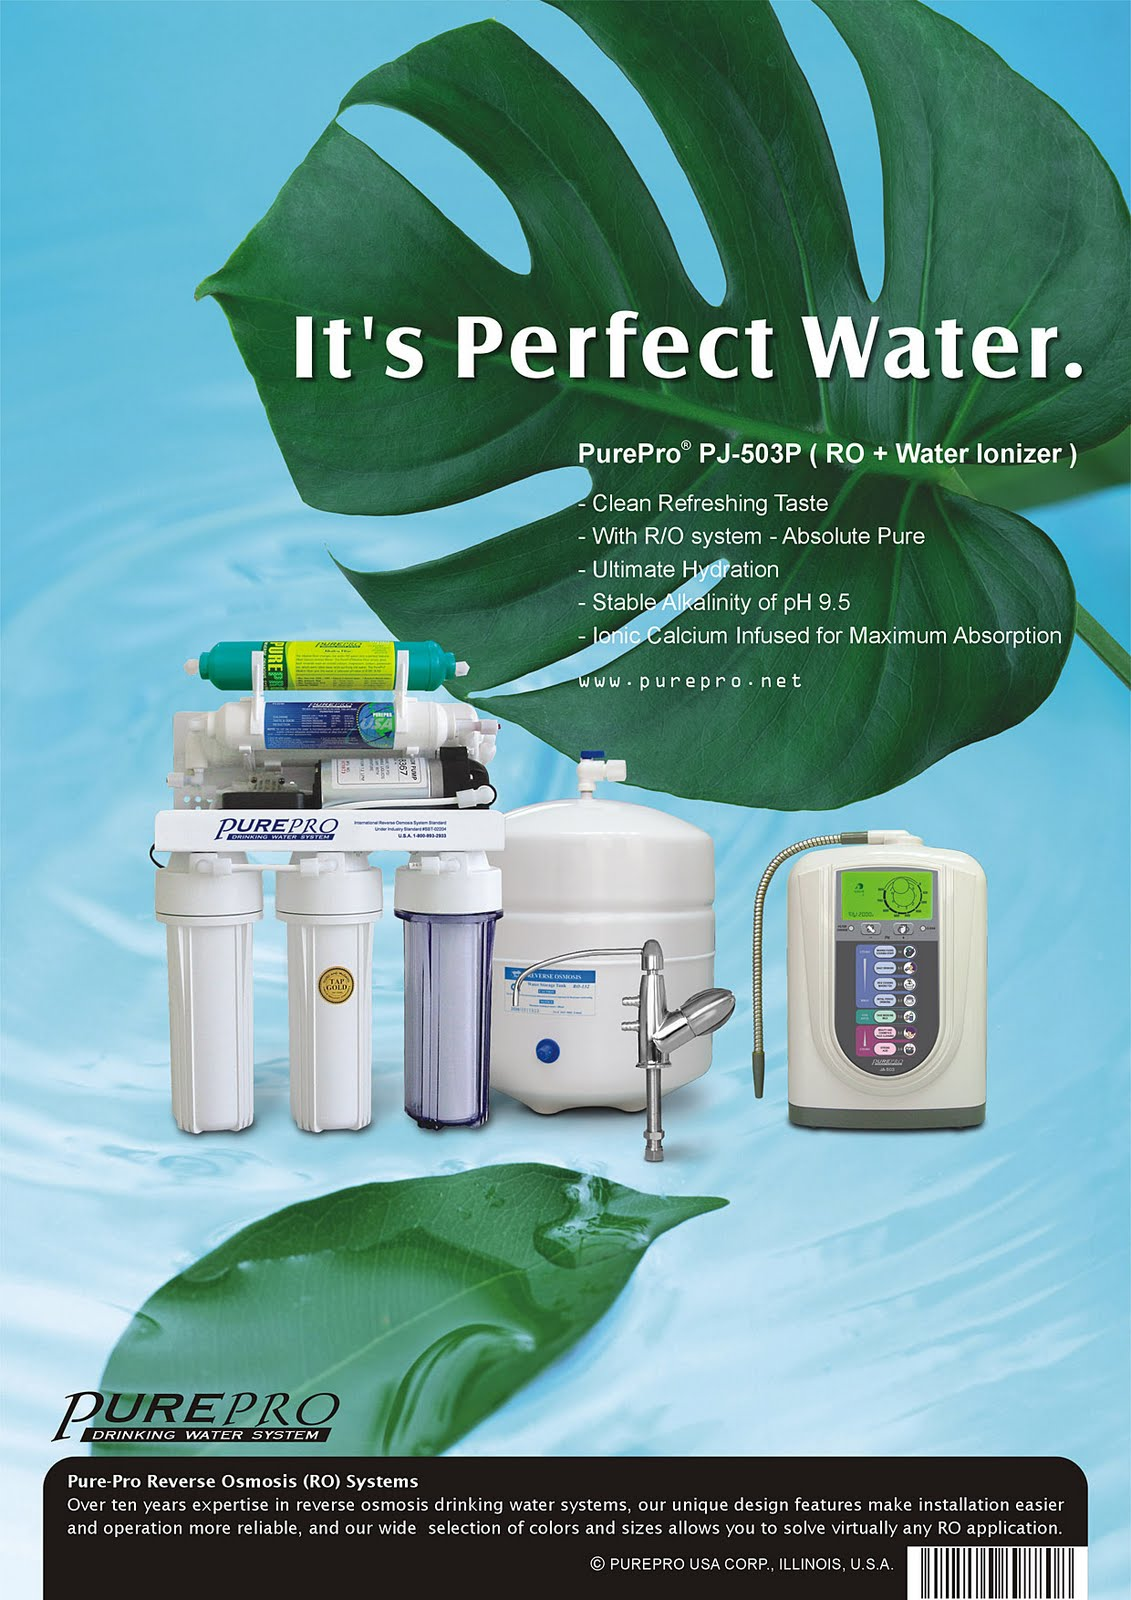 PurePro Perfect Water PJ-503P  Reverse Osmosis + Water Ionizer Water Filtration System